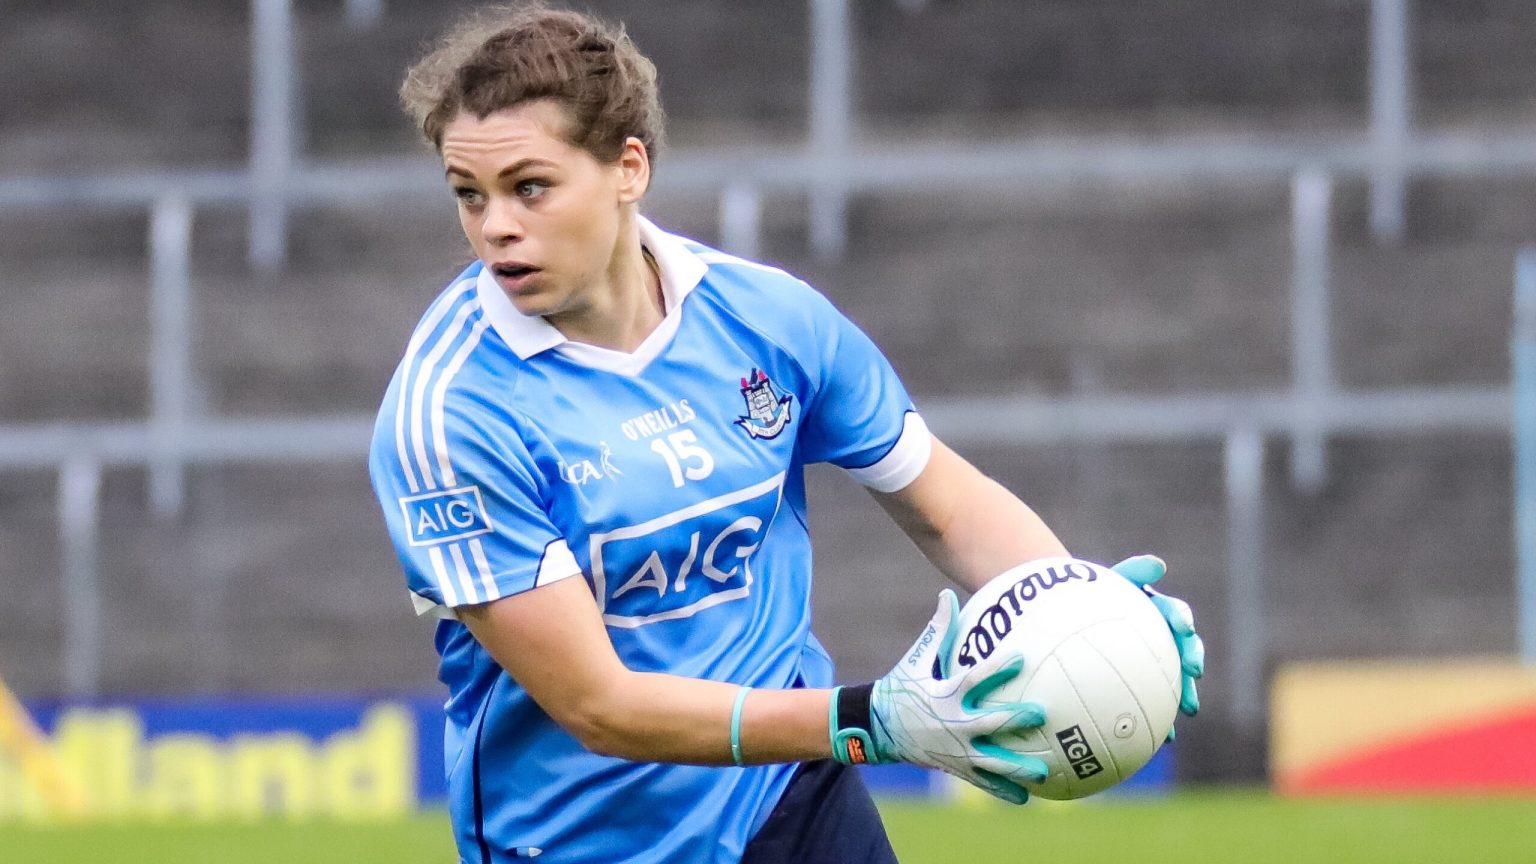 DUBLIN'S NOELLE HEALY NOMINATED FOR THE 2017 RTÉ SPORTSPERSON OF THE YEAR AWARD